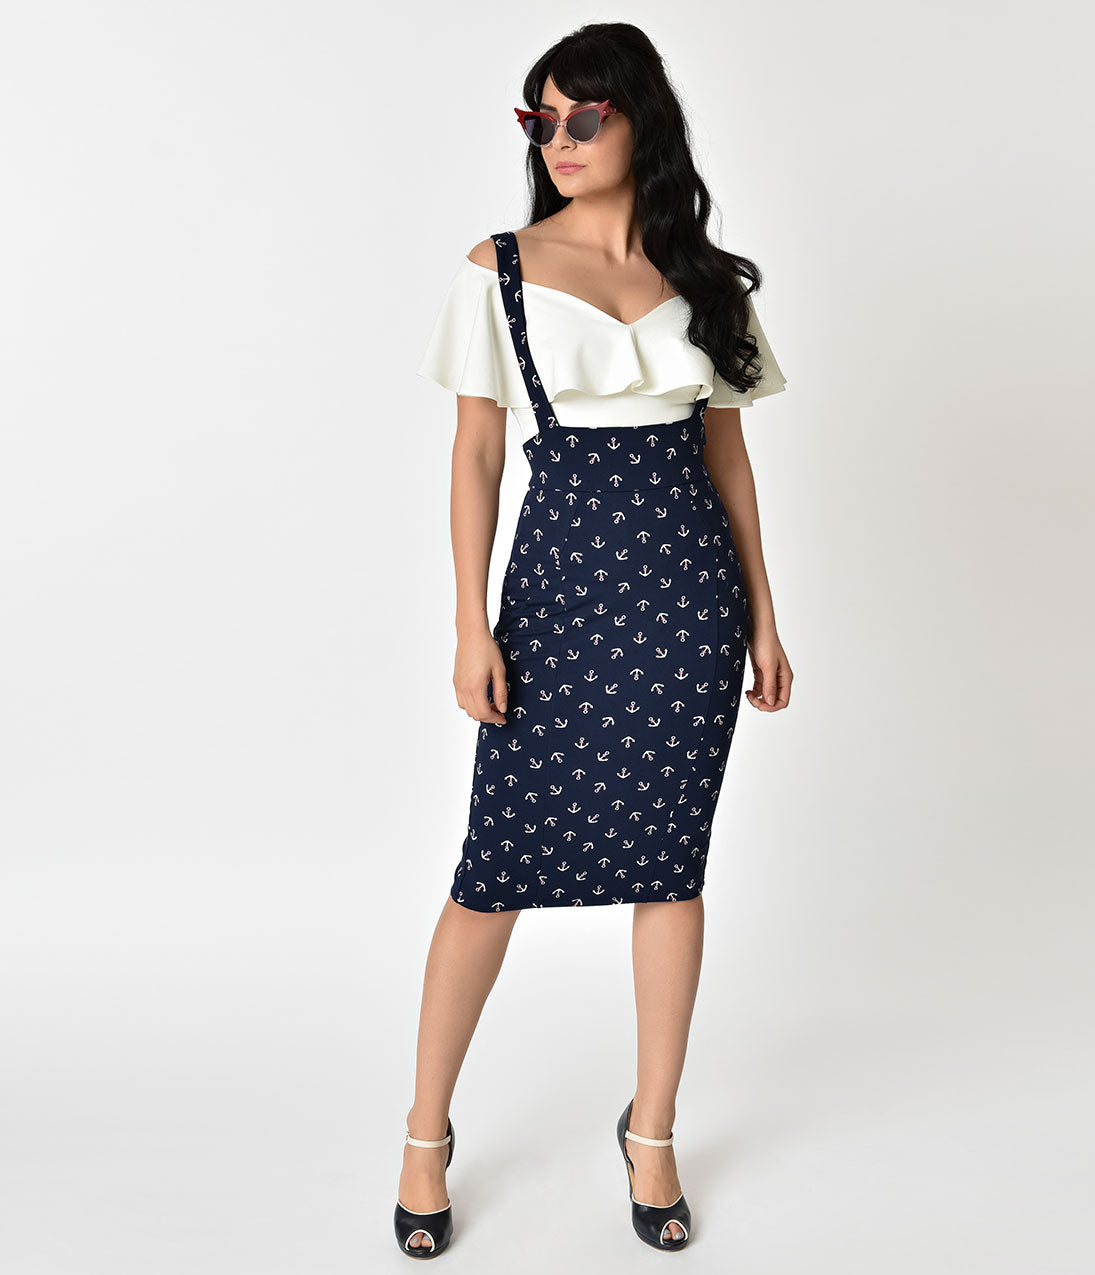 Retro Skirts: Vintage, Pencil, Circle, & Plus Sizes Anchor Print Sabrina Suspender Skirt $54.00 AT vintagedancer.com